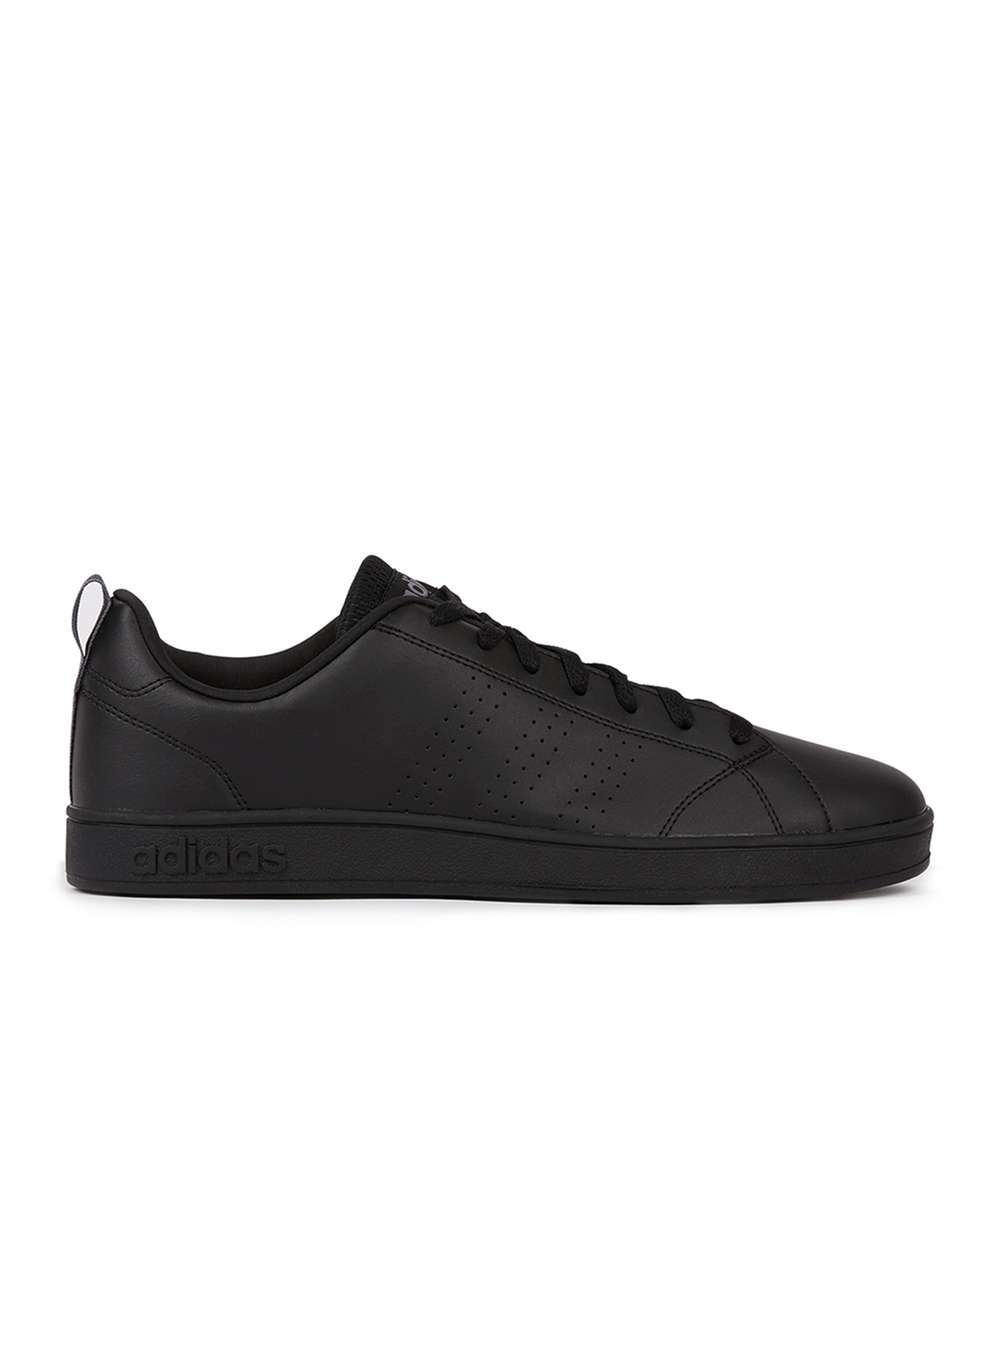 new styles 8c6b6 c45db Adidas Neo Advantage Clean Black Trainers - Topman